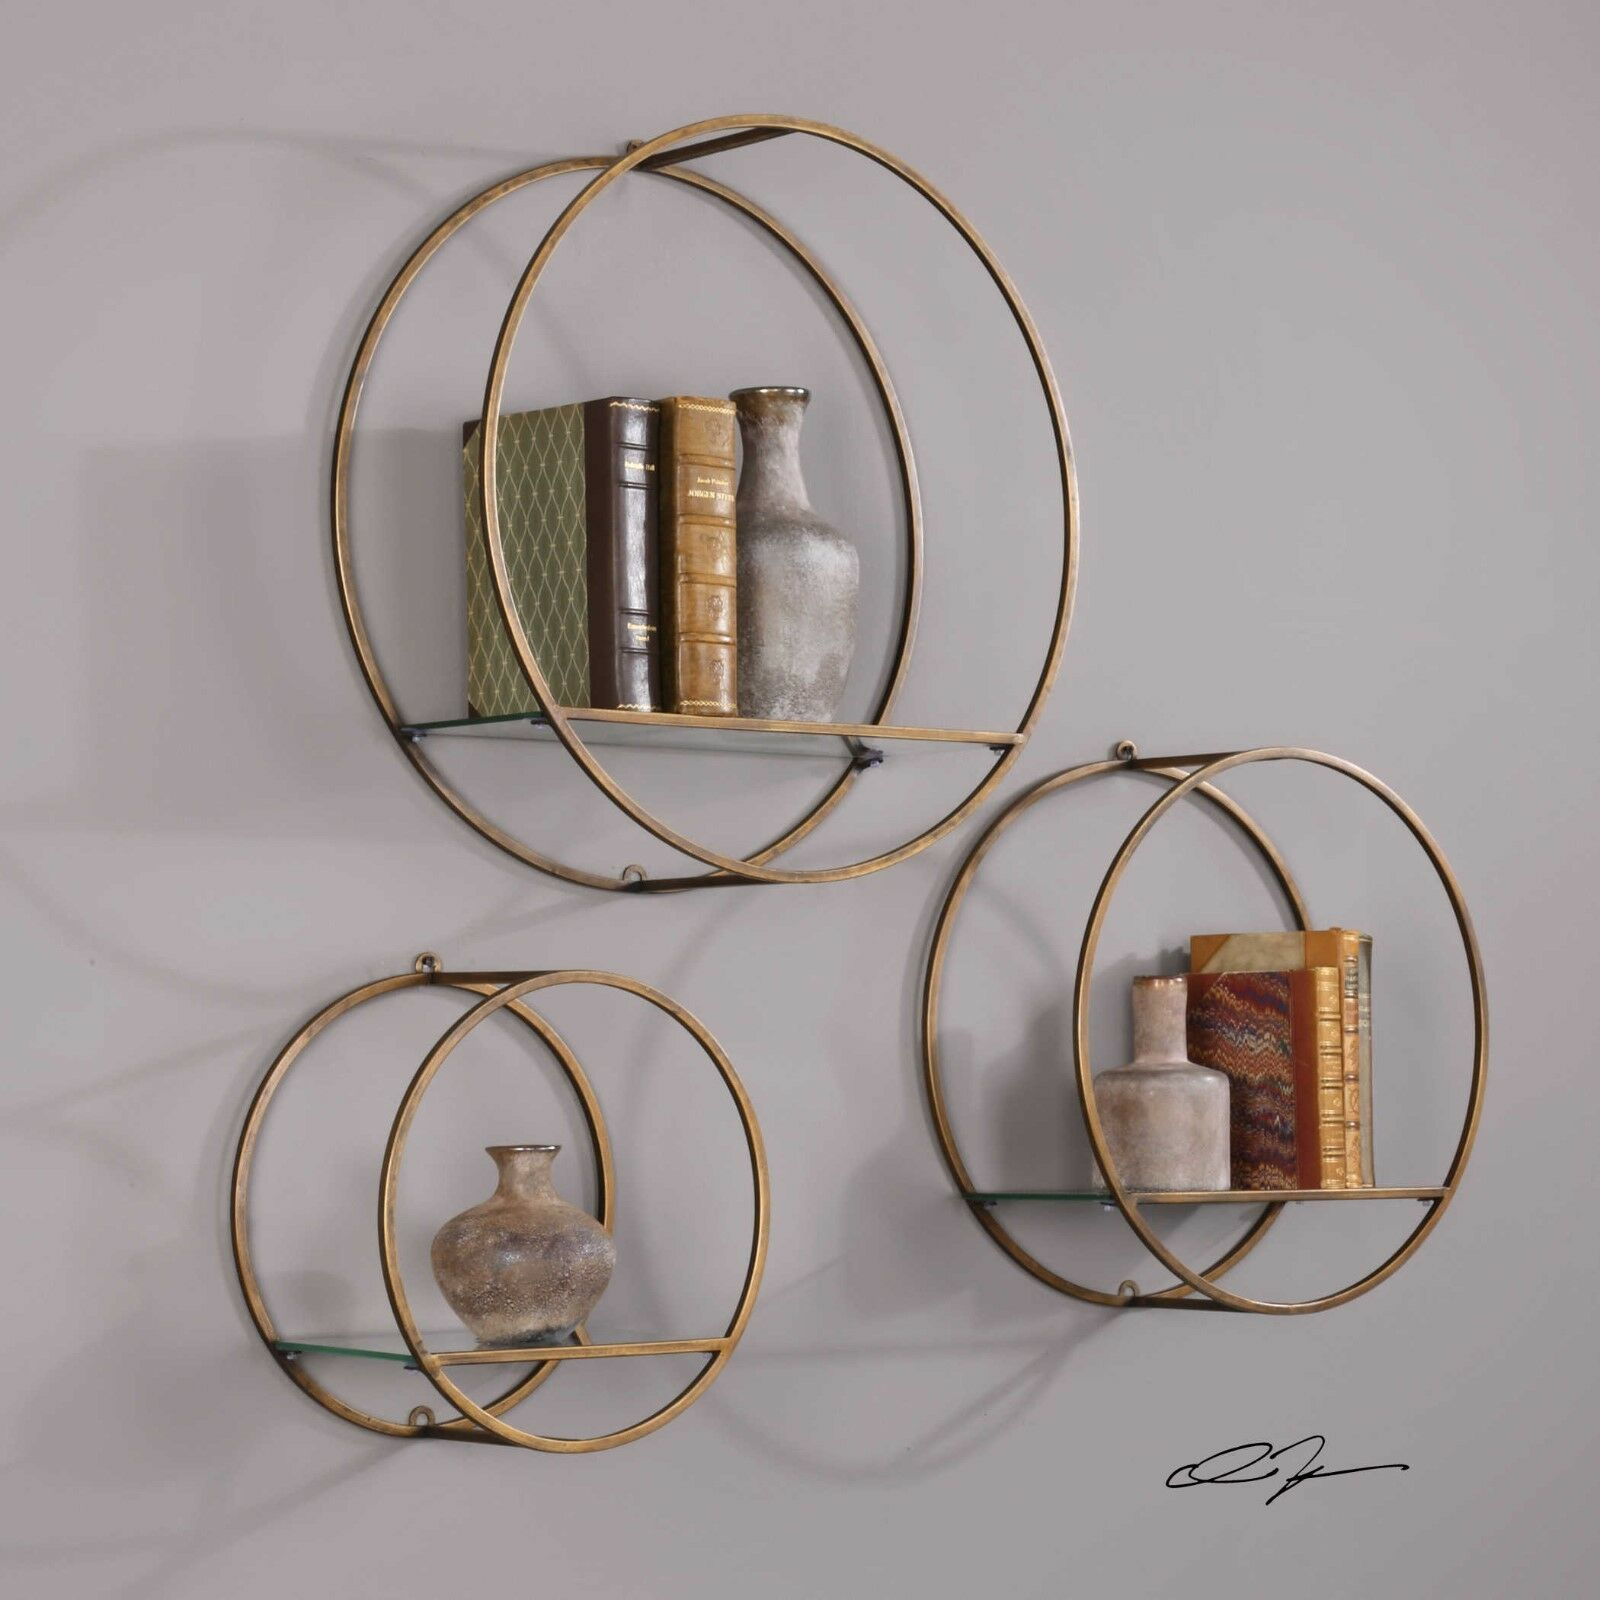 Primary image for Set 3 Round Shelf Wall Display Antique Gold Leaf Metal Glass Modern Bathroom New